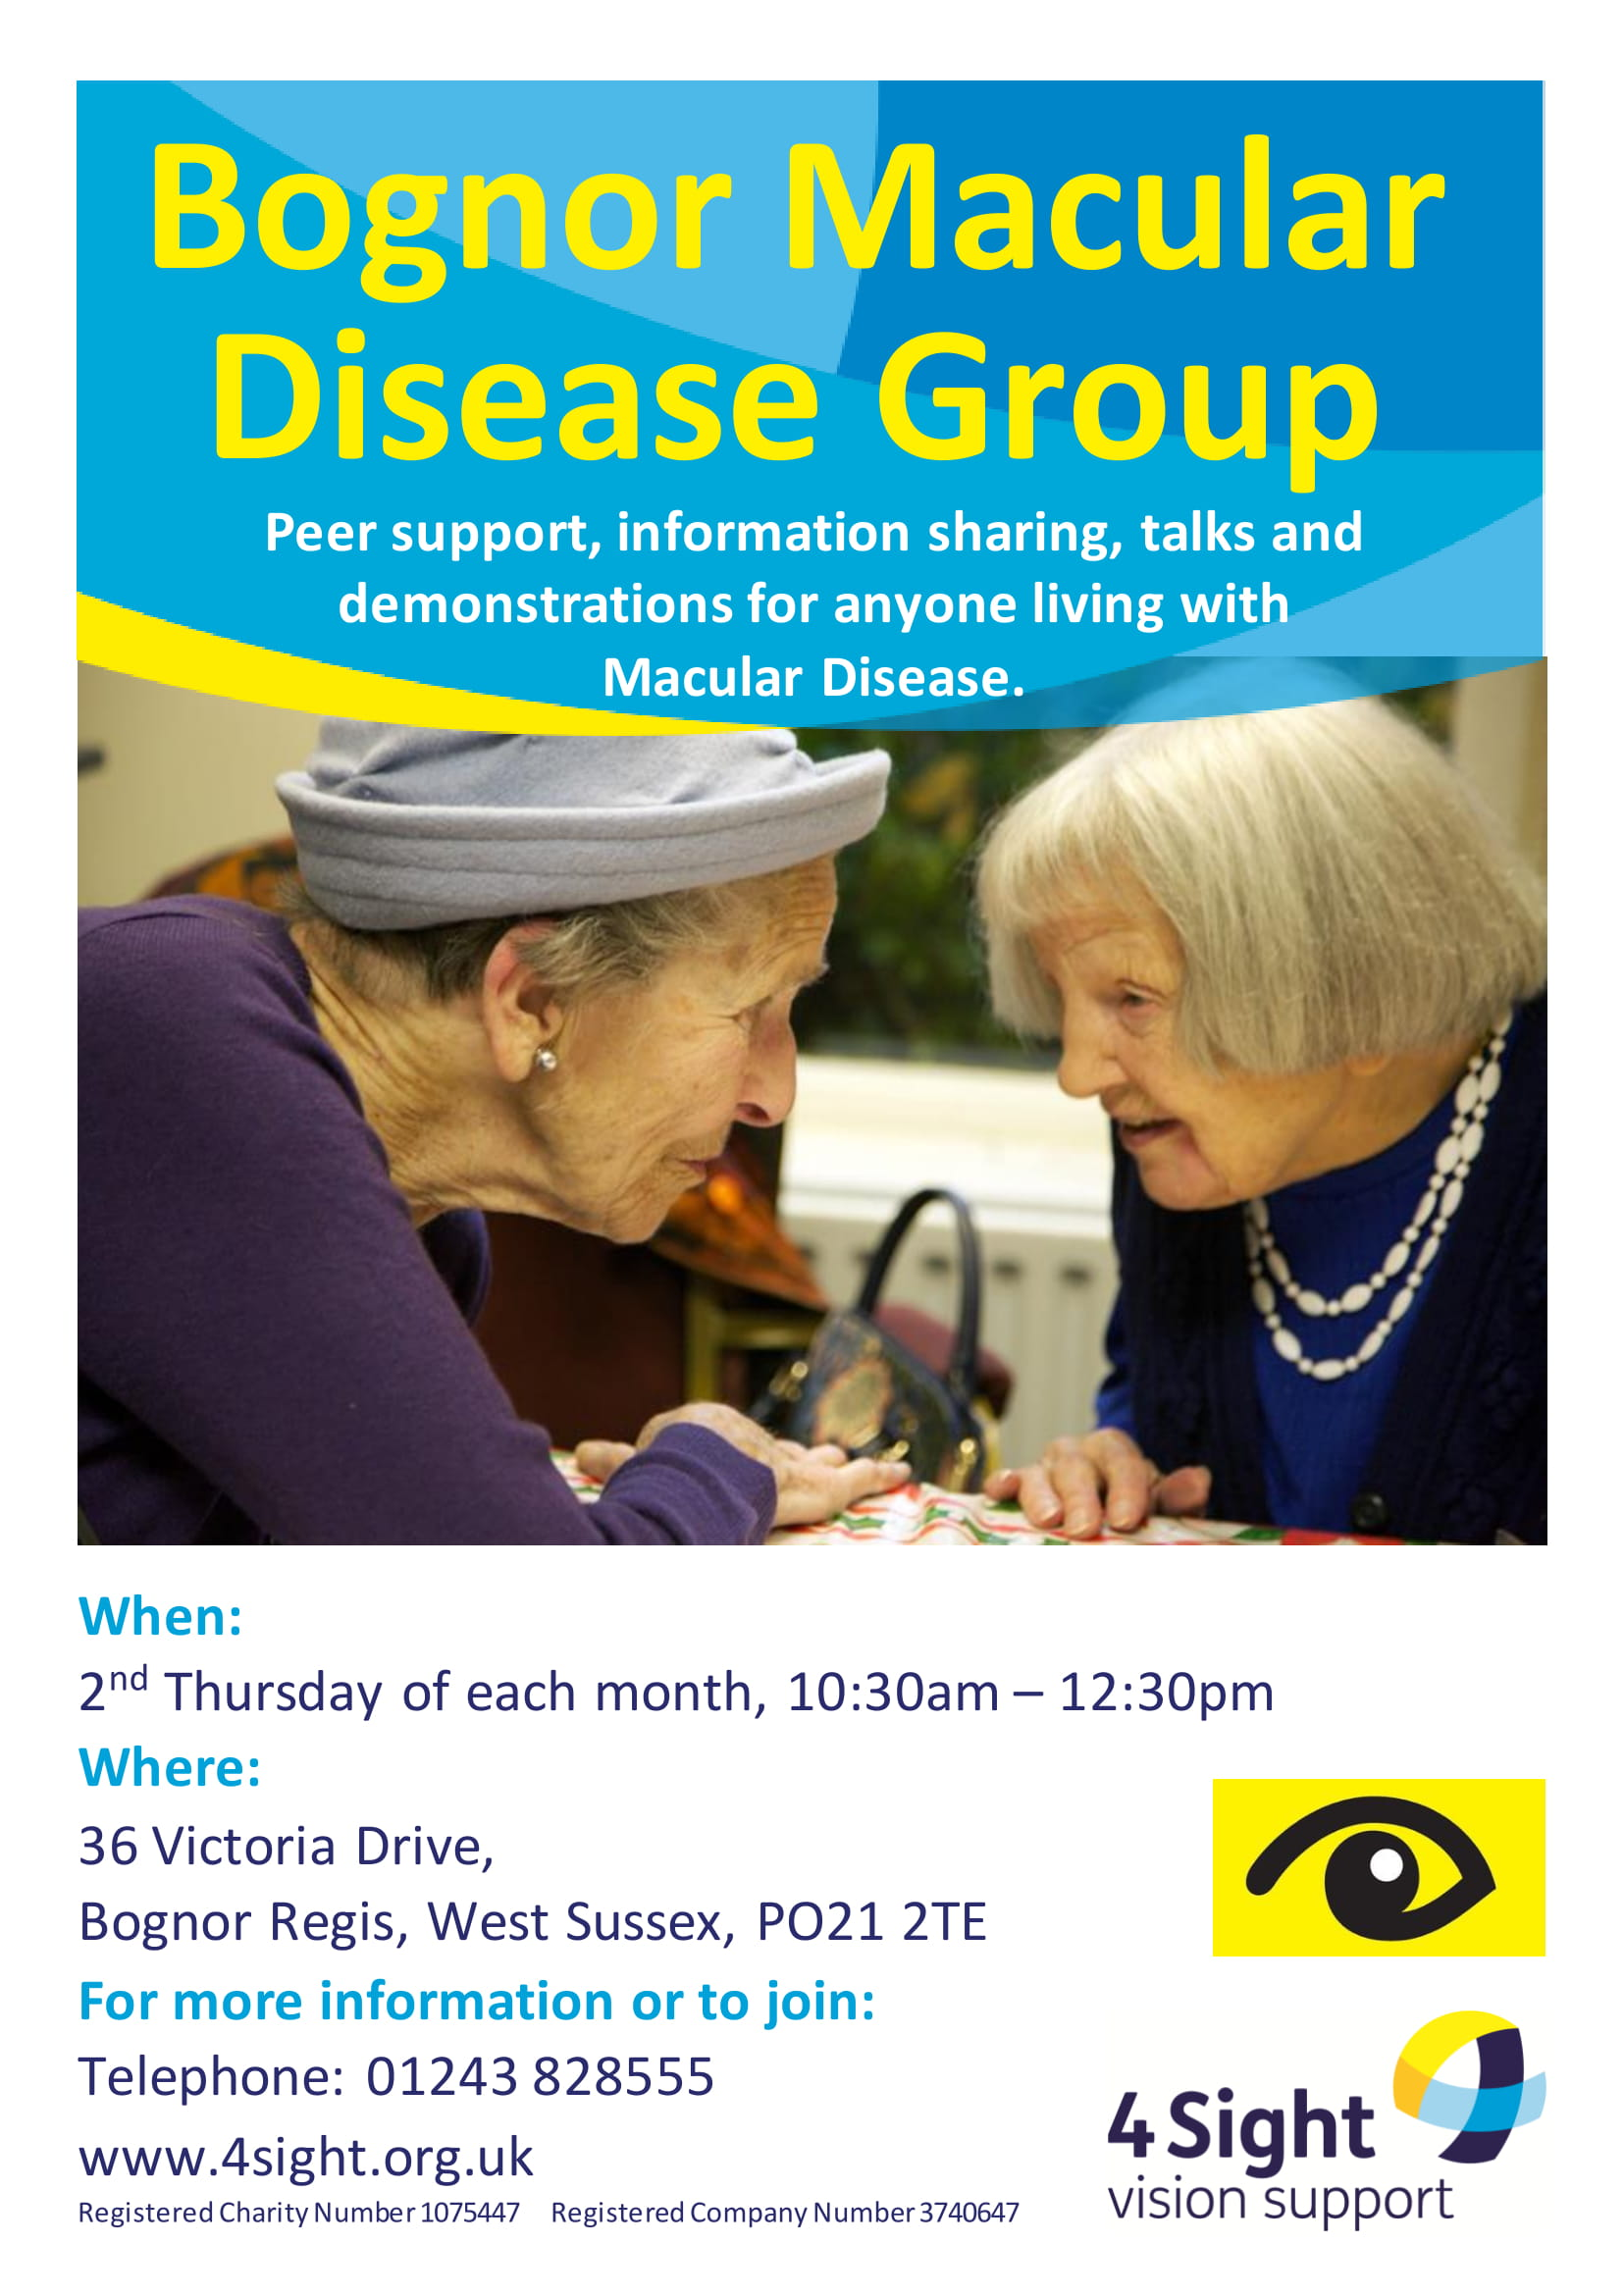 Bognor Macular Disease Group-1